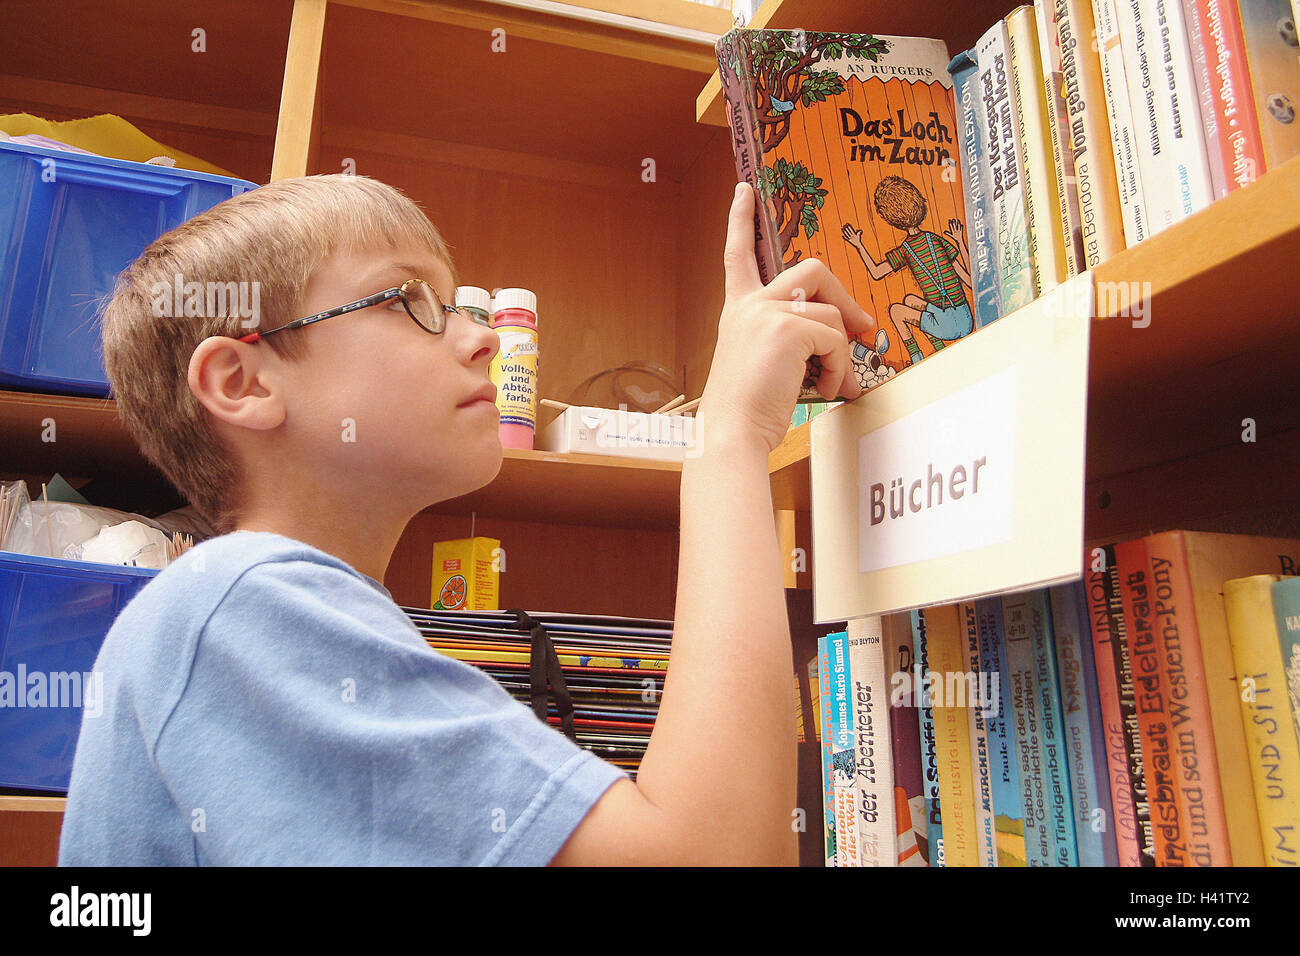 Bookshelf Boy Glasses Interests Abdomen Pull Out Tread Child School Elementary Lessons Library